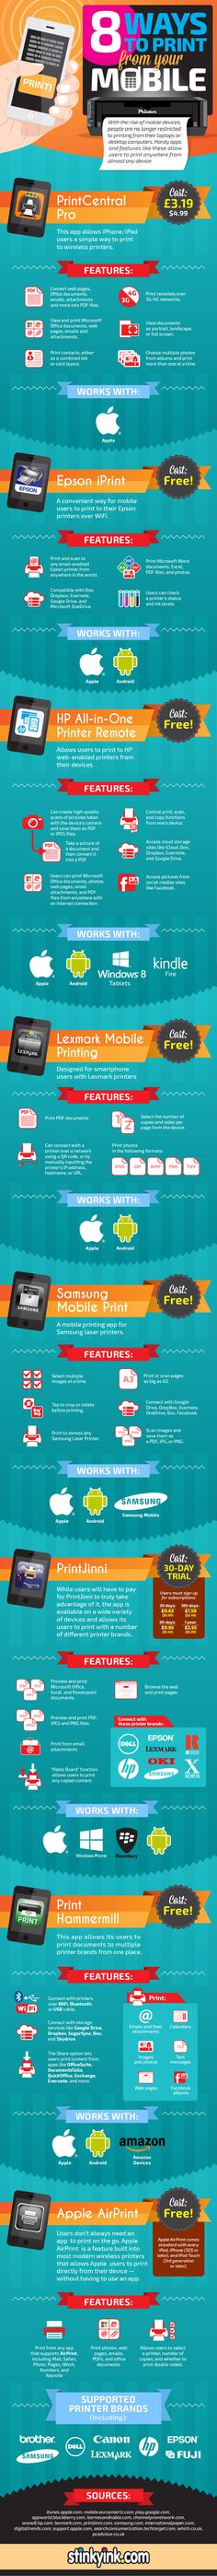 8 Ways To Print From Your #Mobile - #infographic #technology